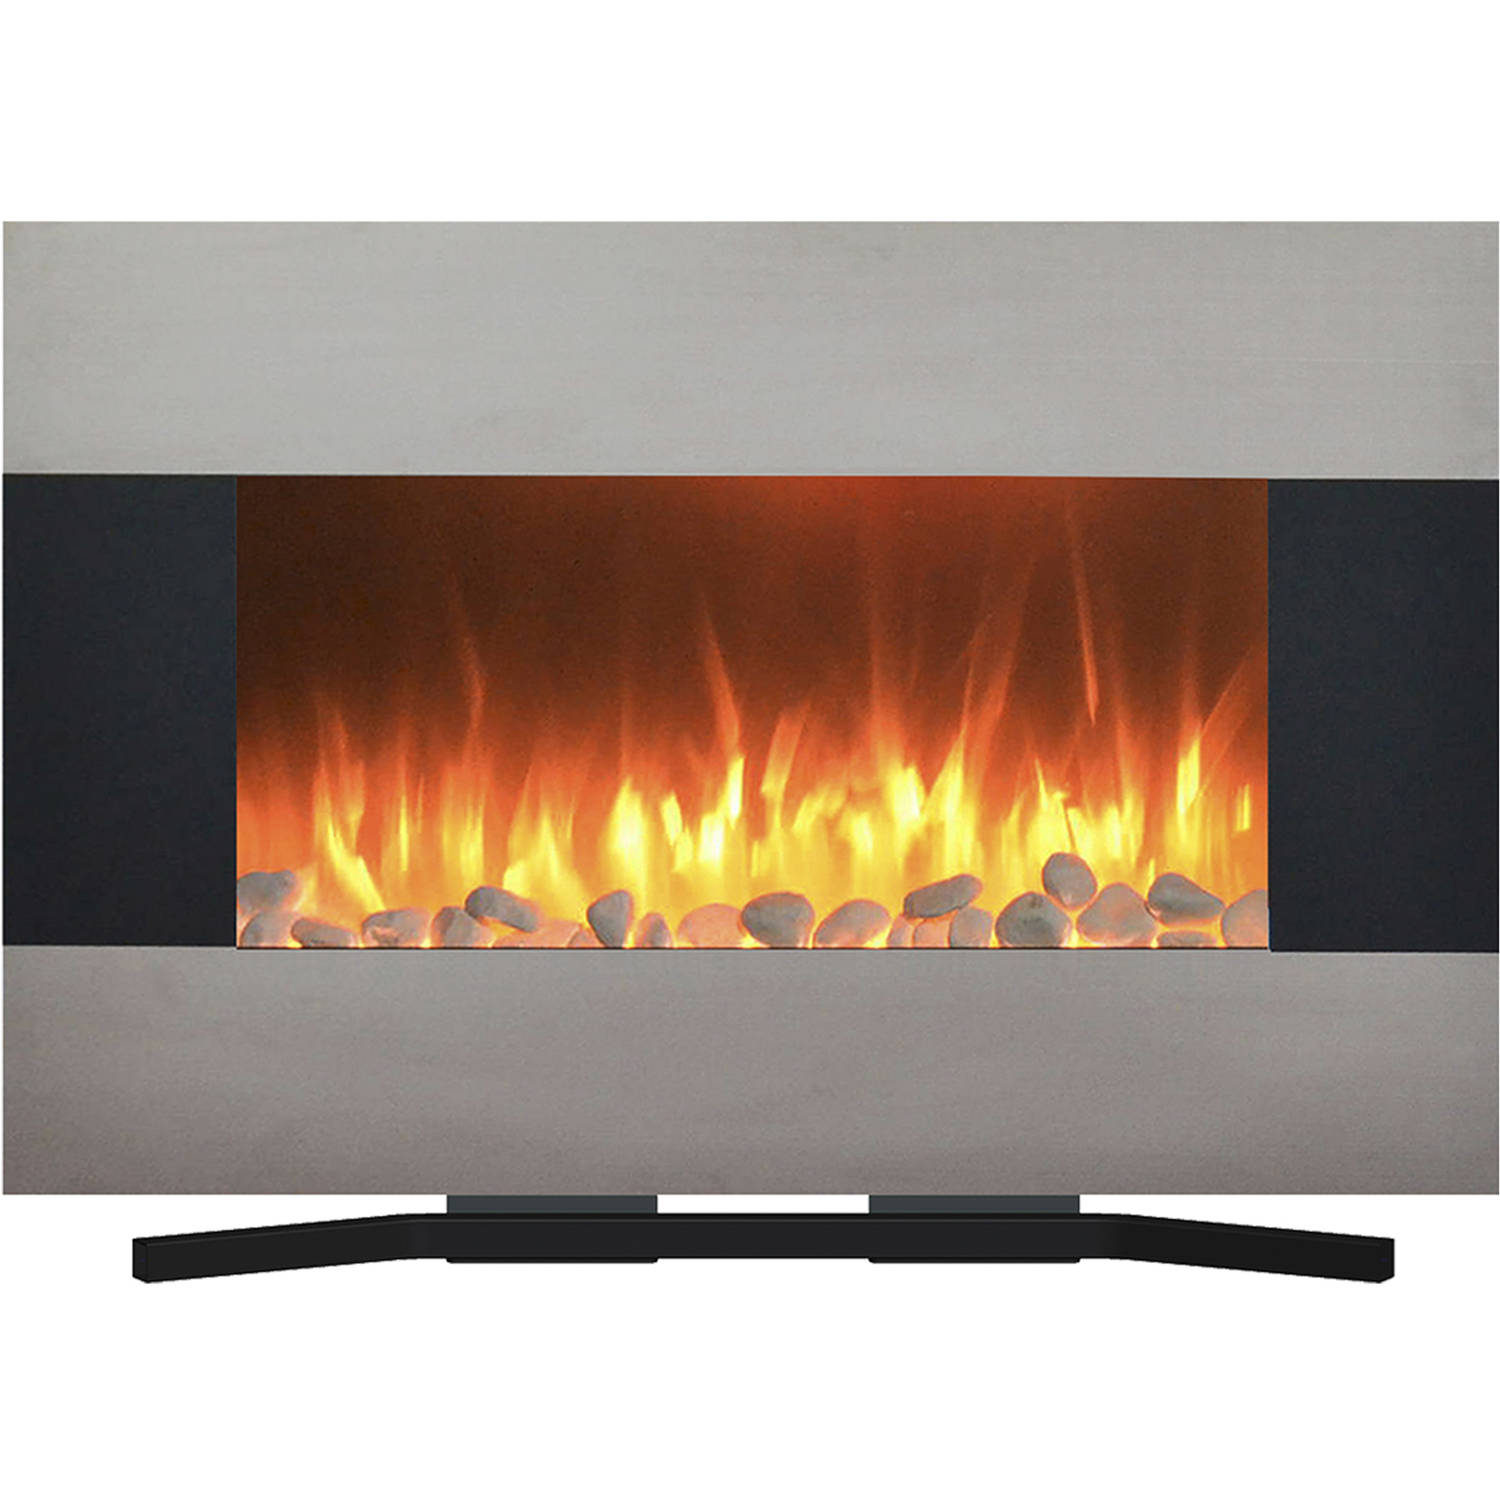 Elegant muskoka electric fireplace for home furniture with muskoka electric fireplace insert